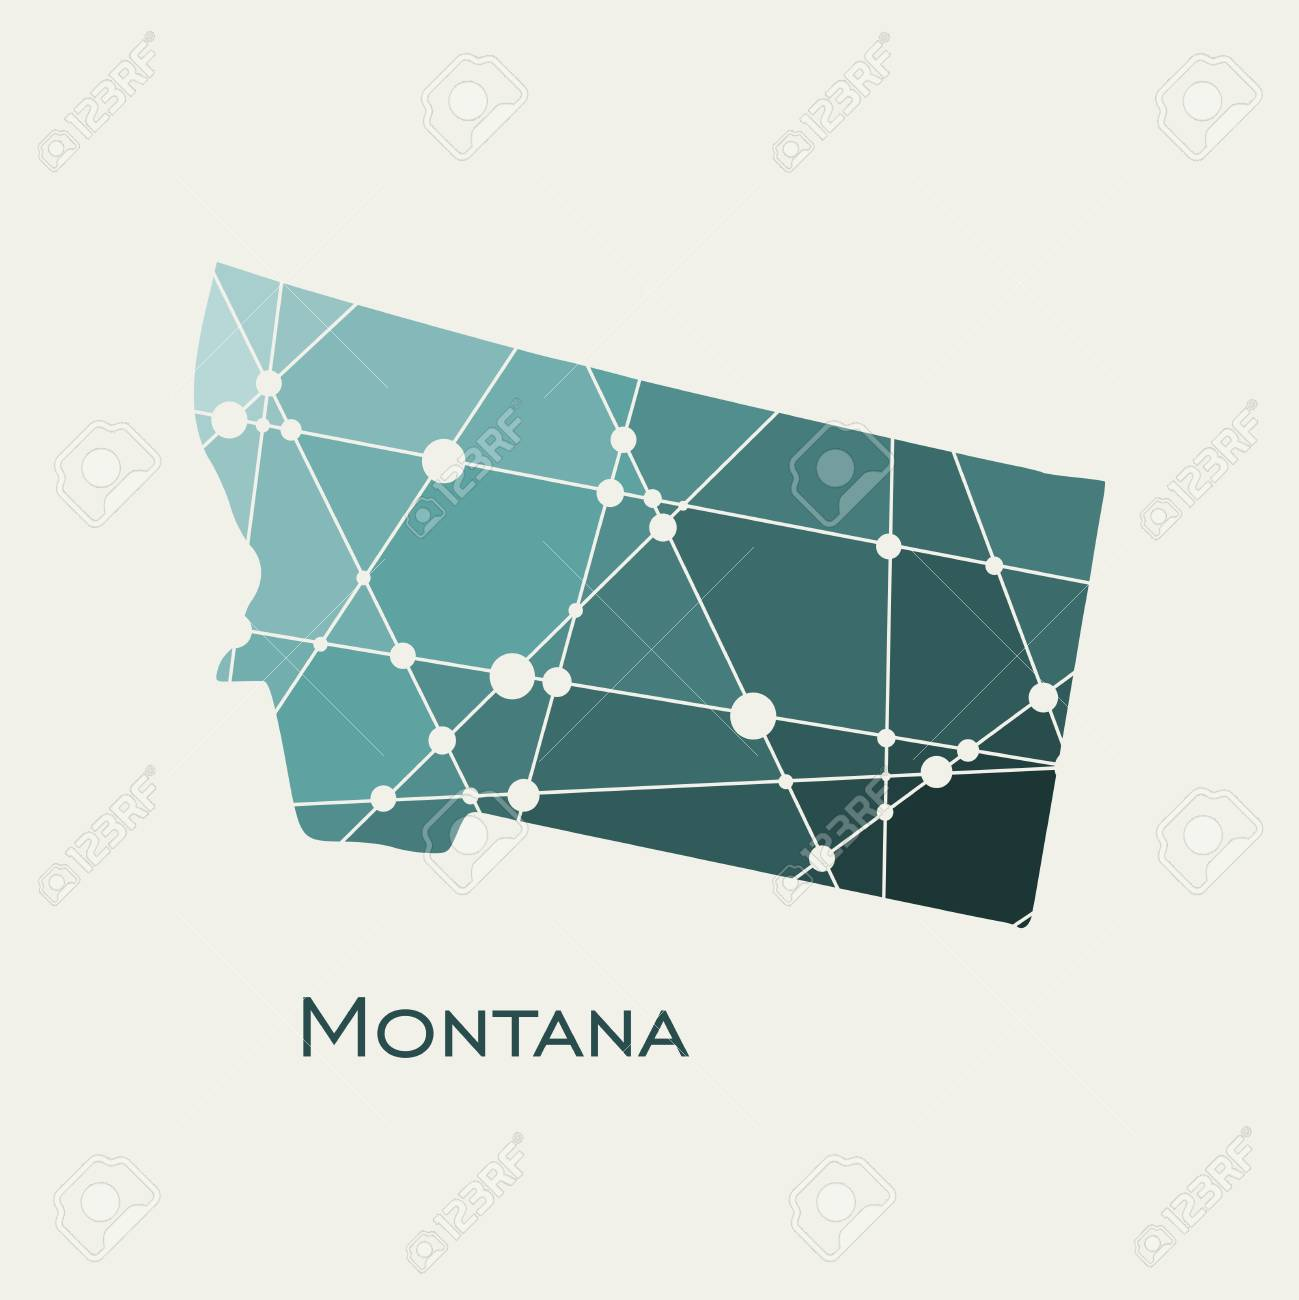 Image Relative To Usa Travel Montana State Map Textured By Lines